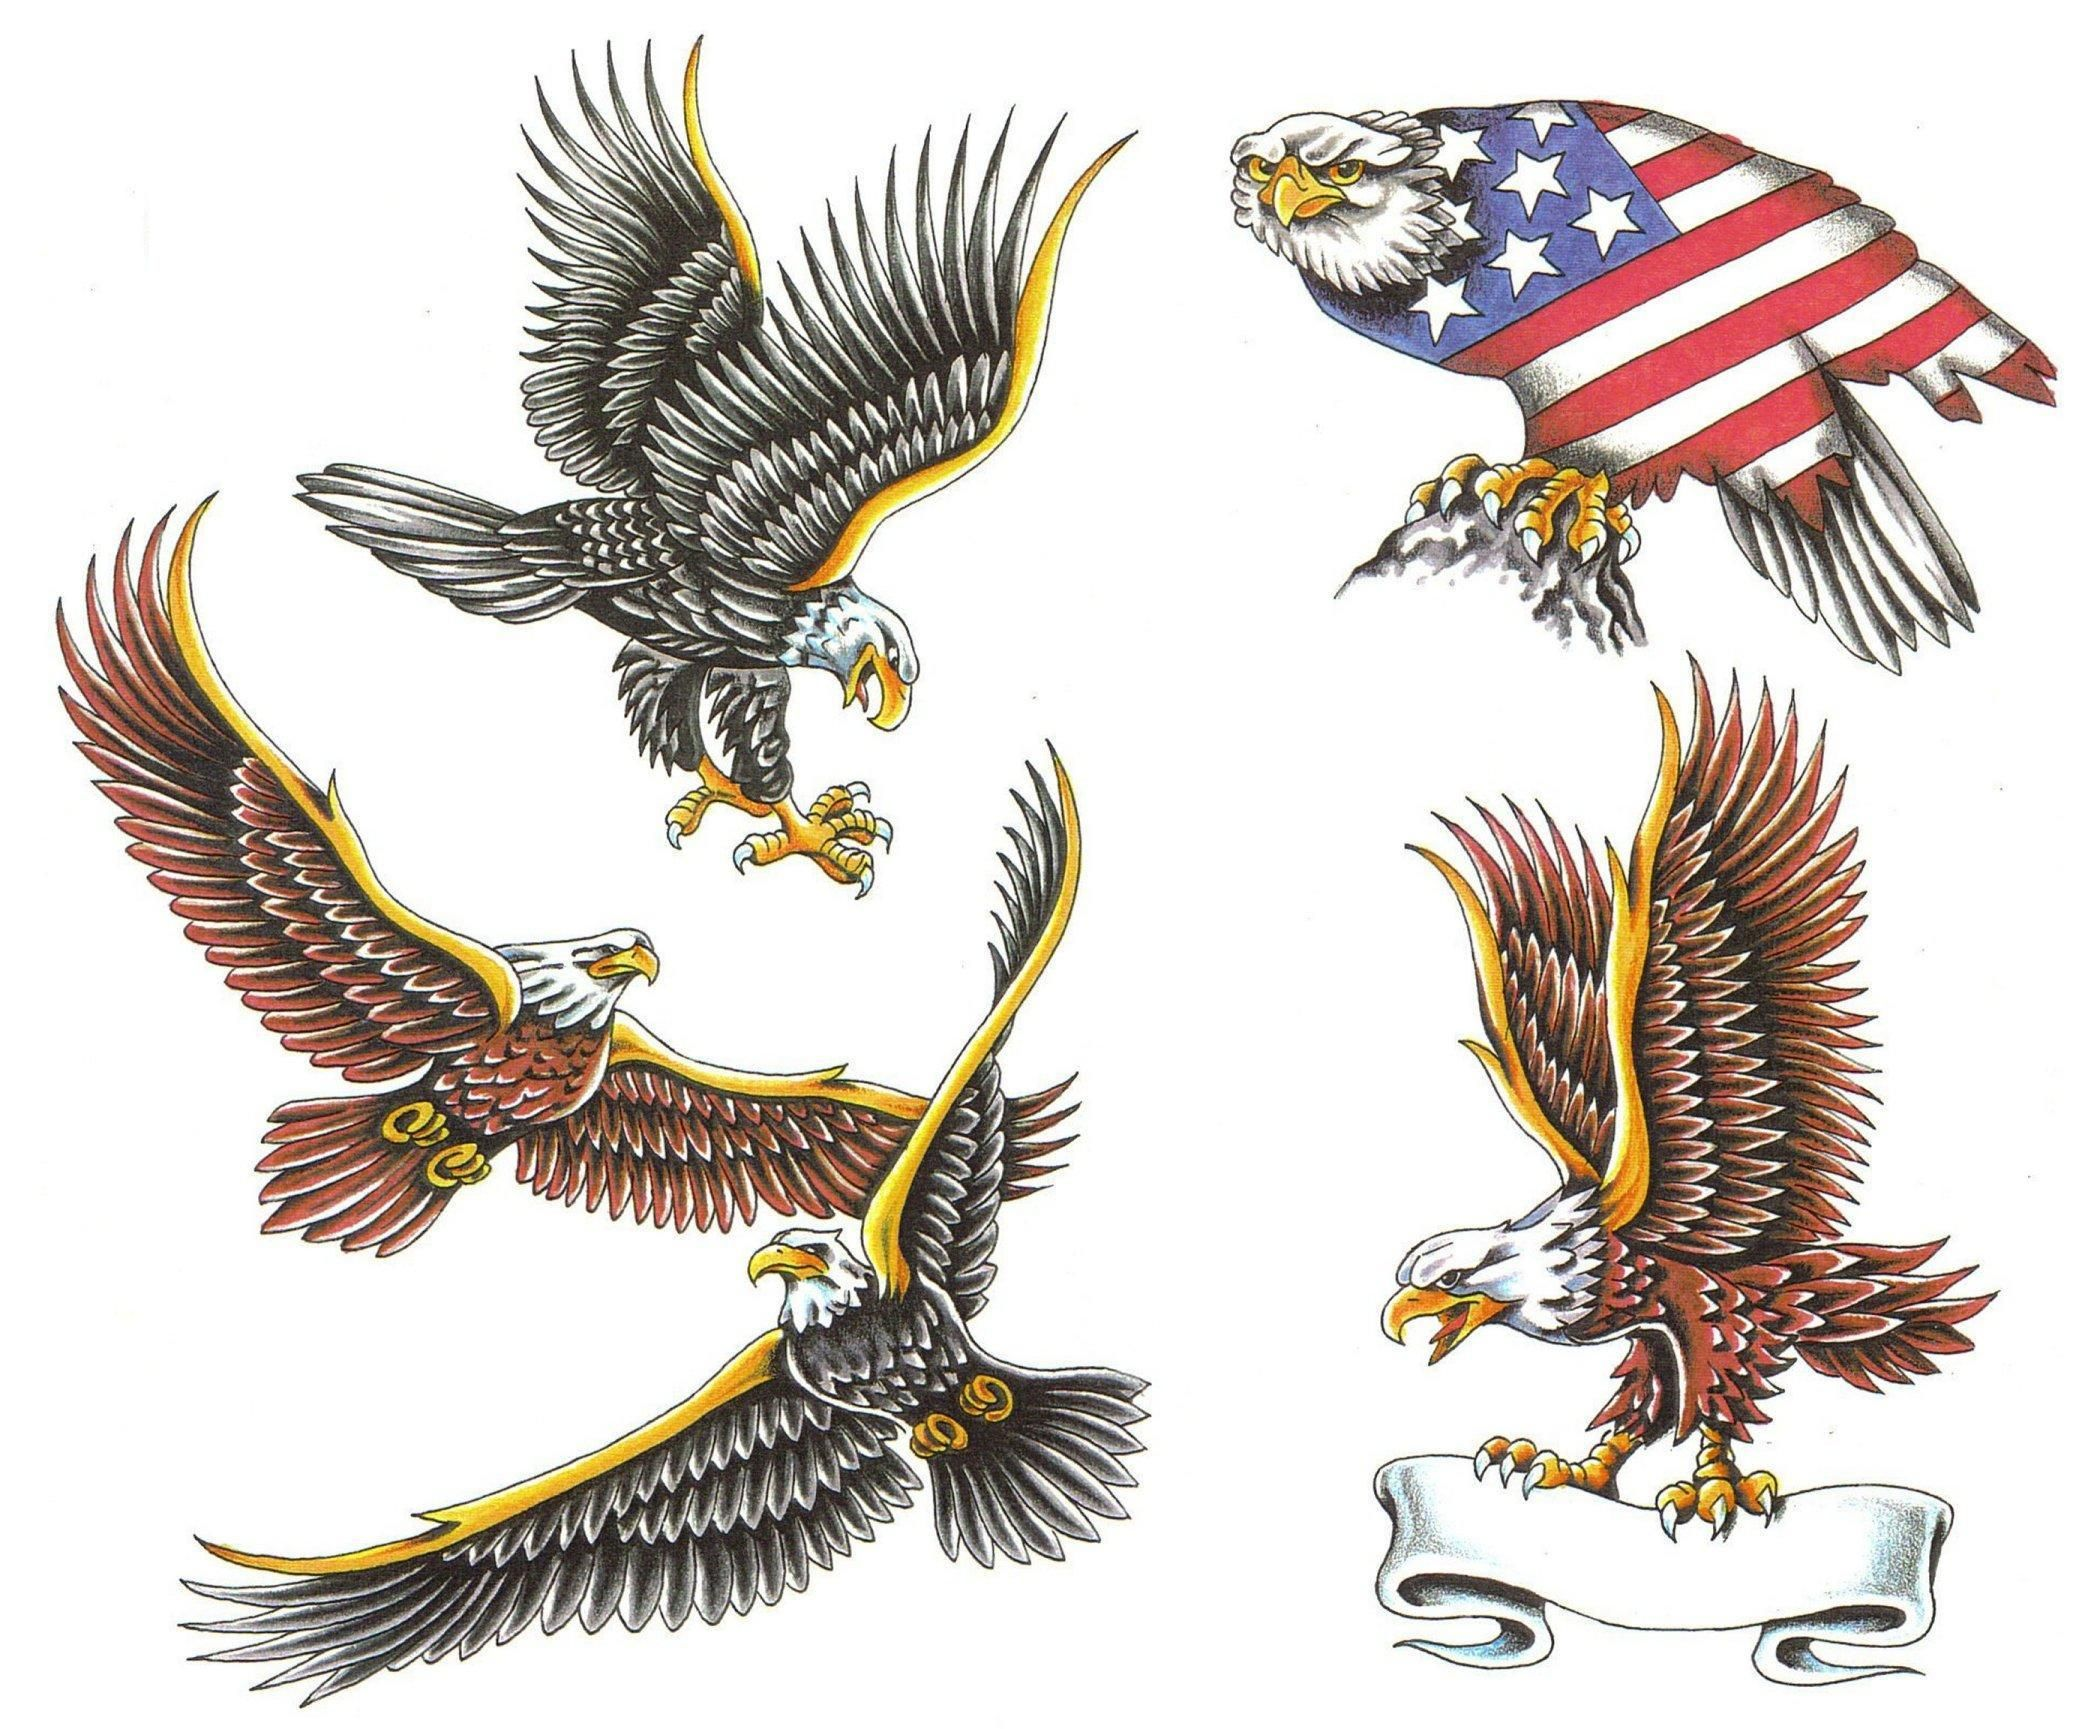 American eagle tattoos high quality photos and flash - Eagle Tattoo Designs The Bald Flying Eagle S